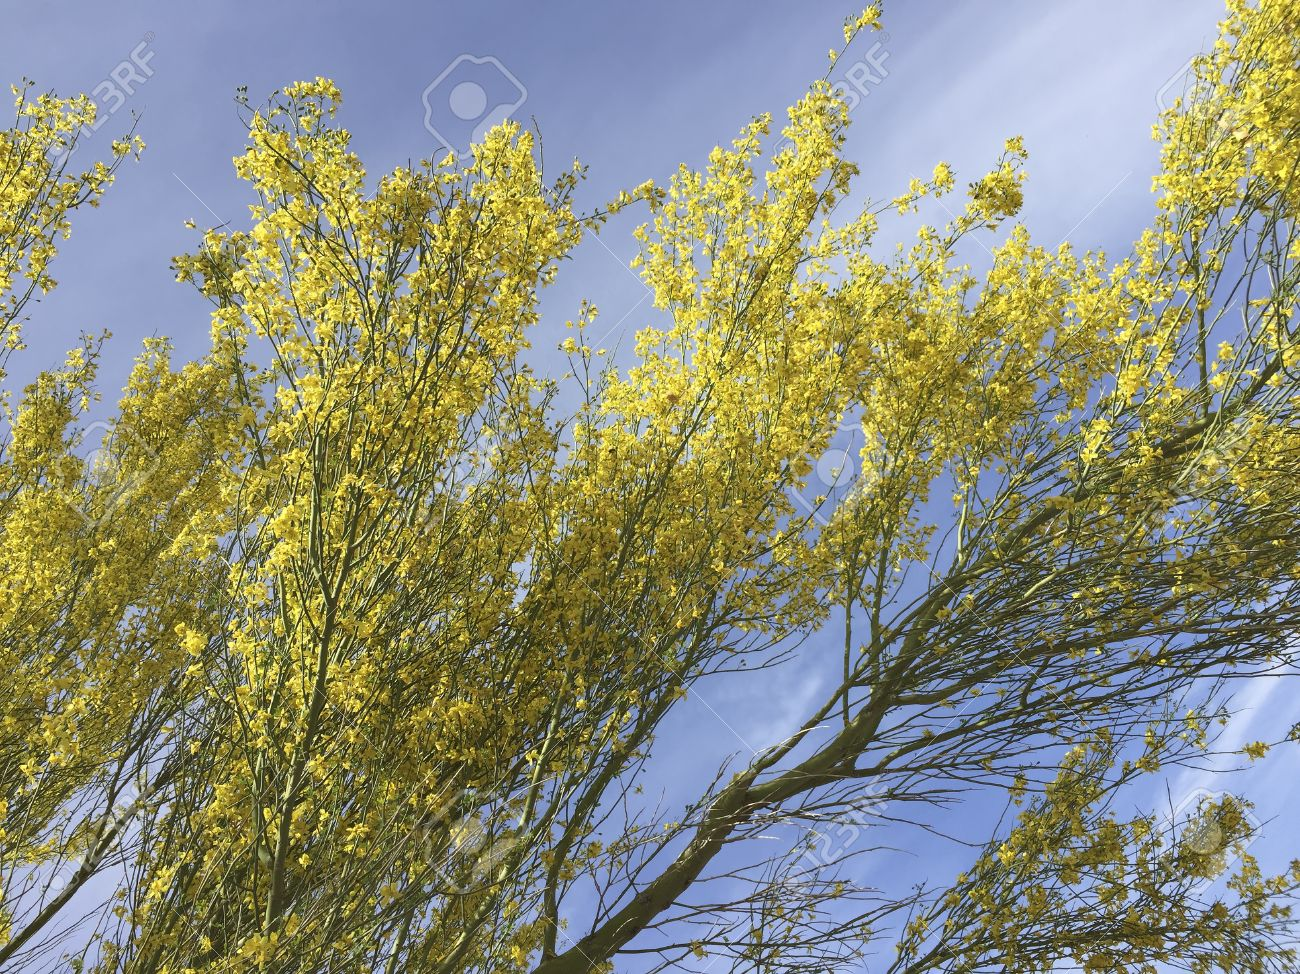 Yellow Blossom Of Palo Verde Tree In Spring Against Blue Sky Stock